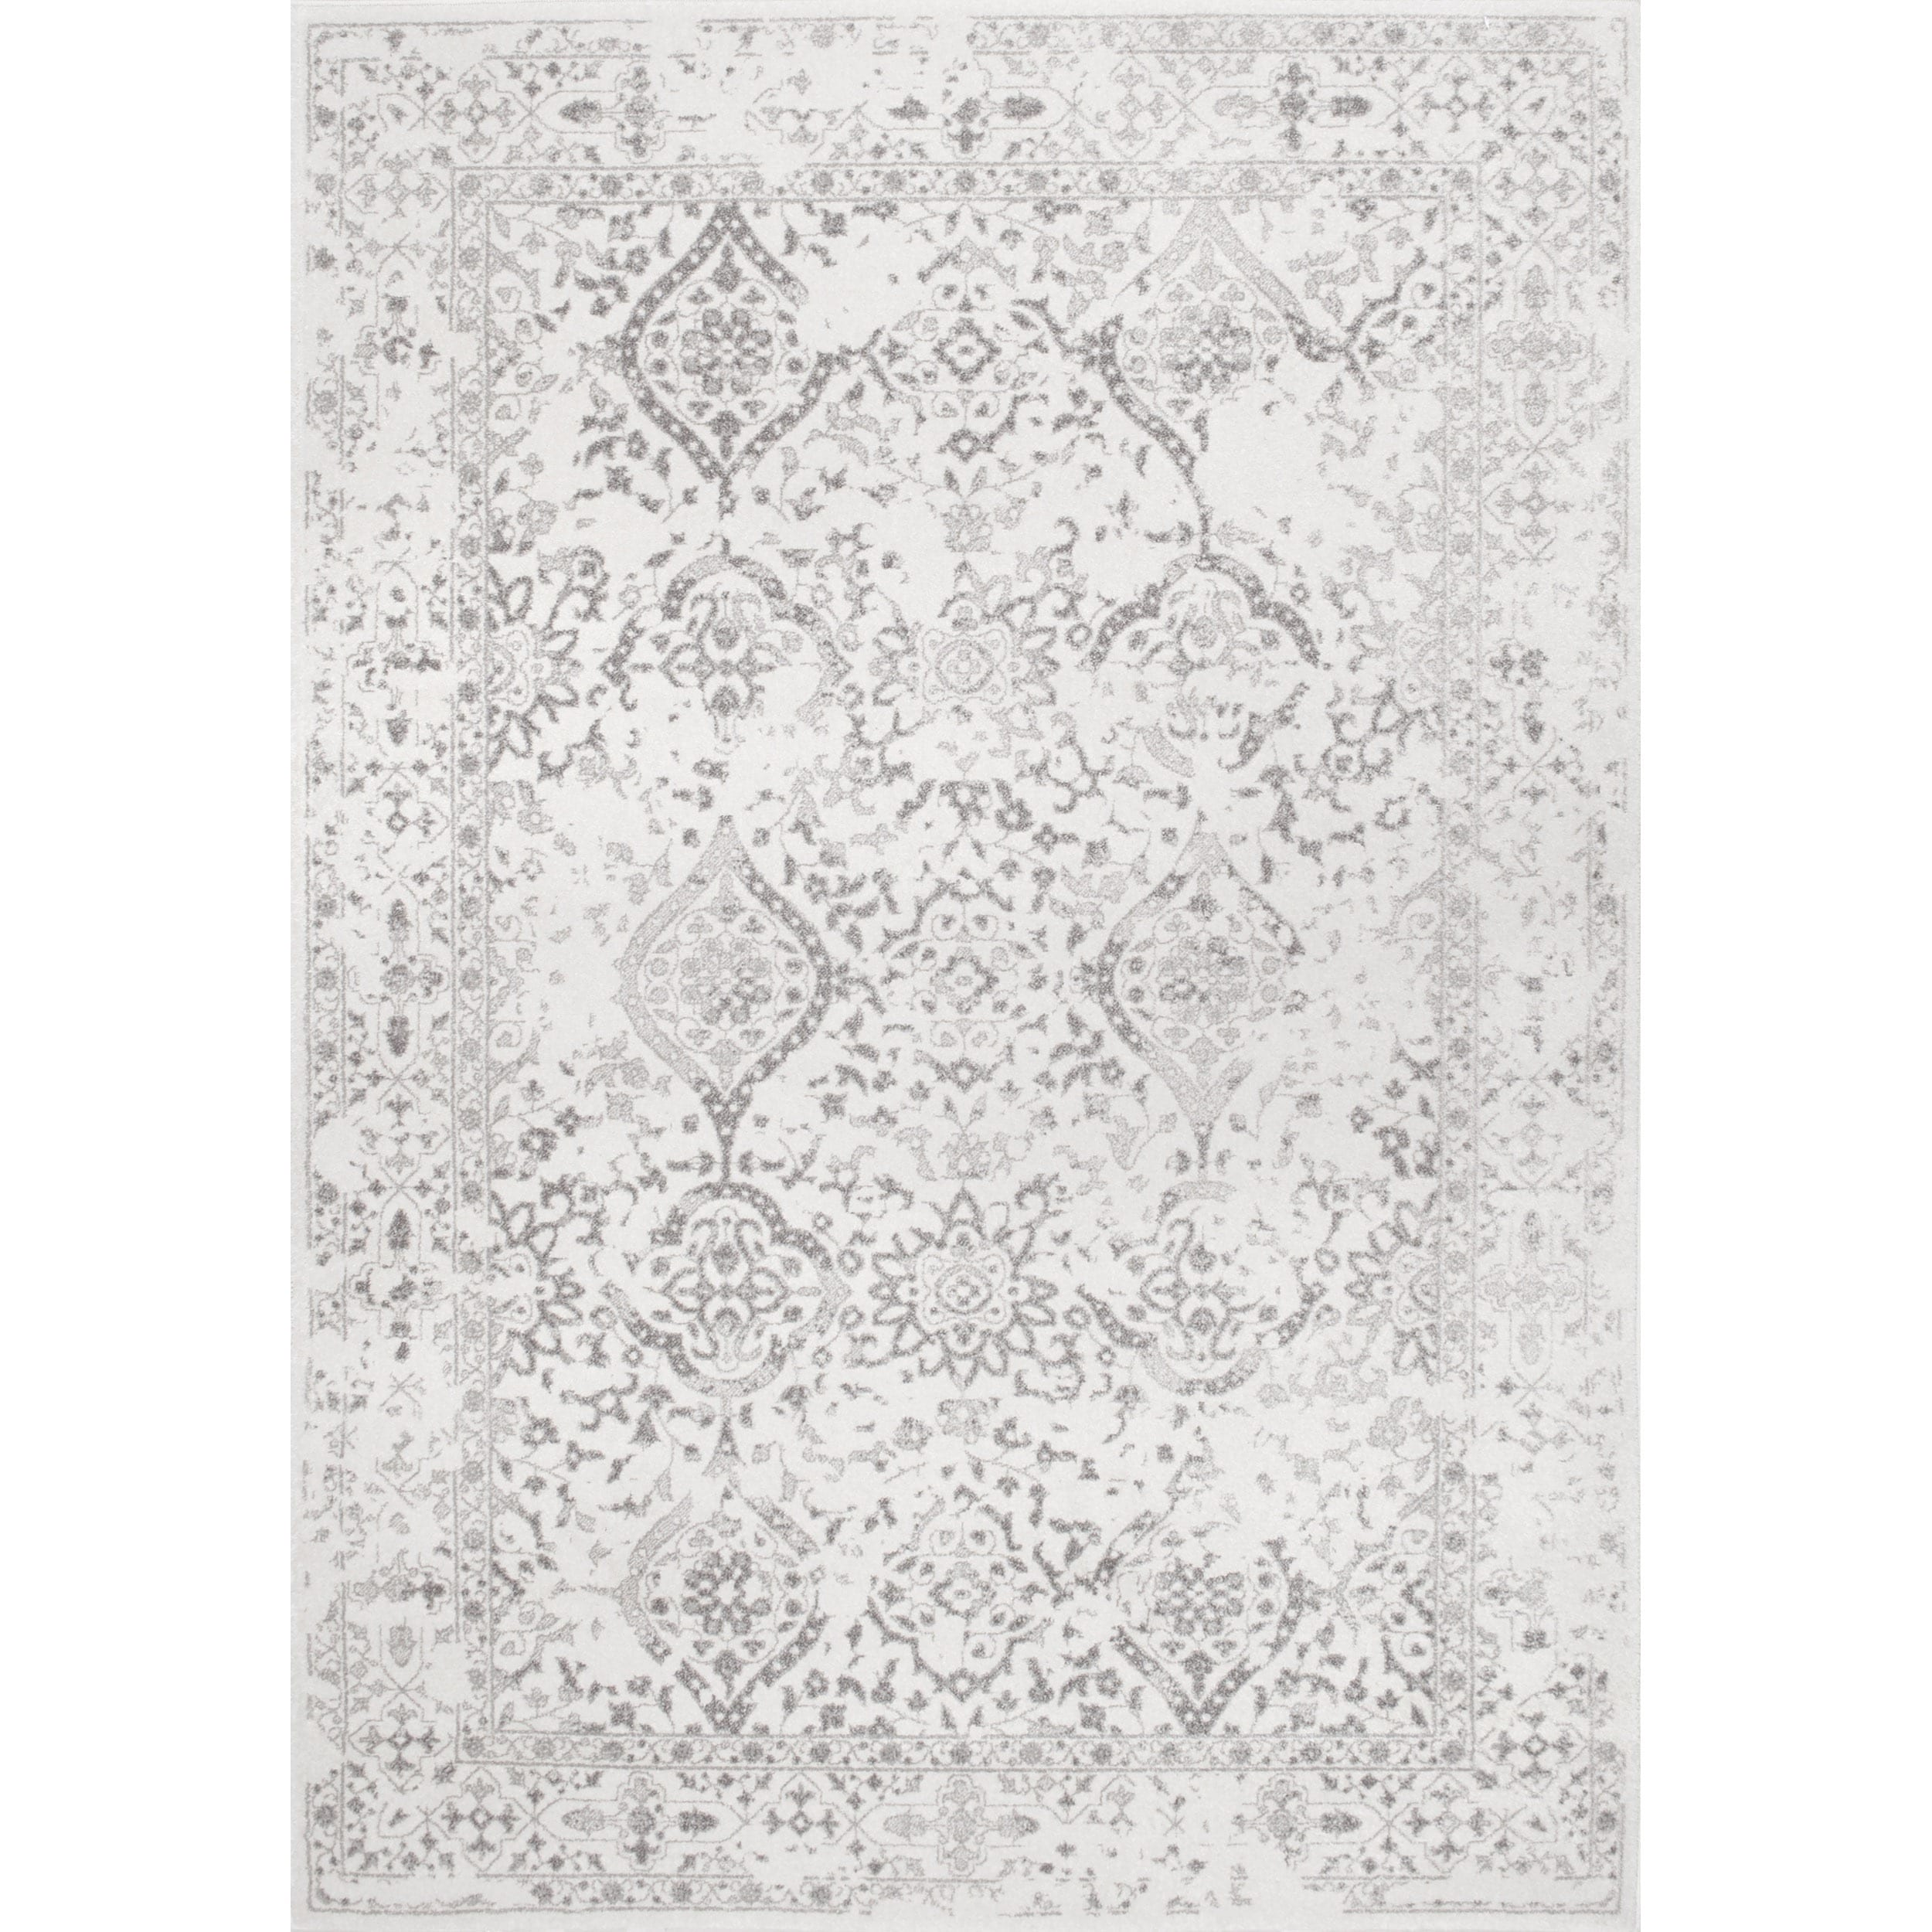 Maison Rouge Gibran Vintage Fl Ornament Ivory Area Rug 5 X 7 Free Shipping On Orders Over 45 Com 20170705